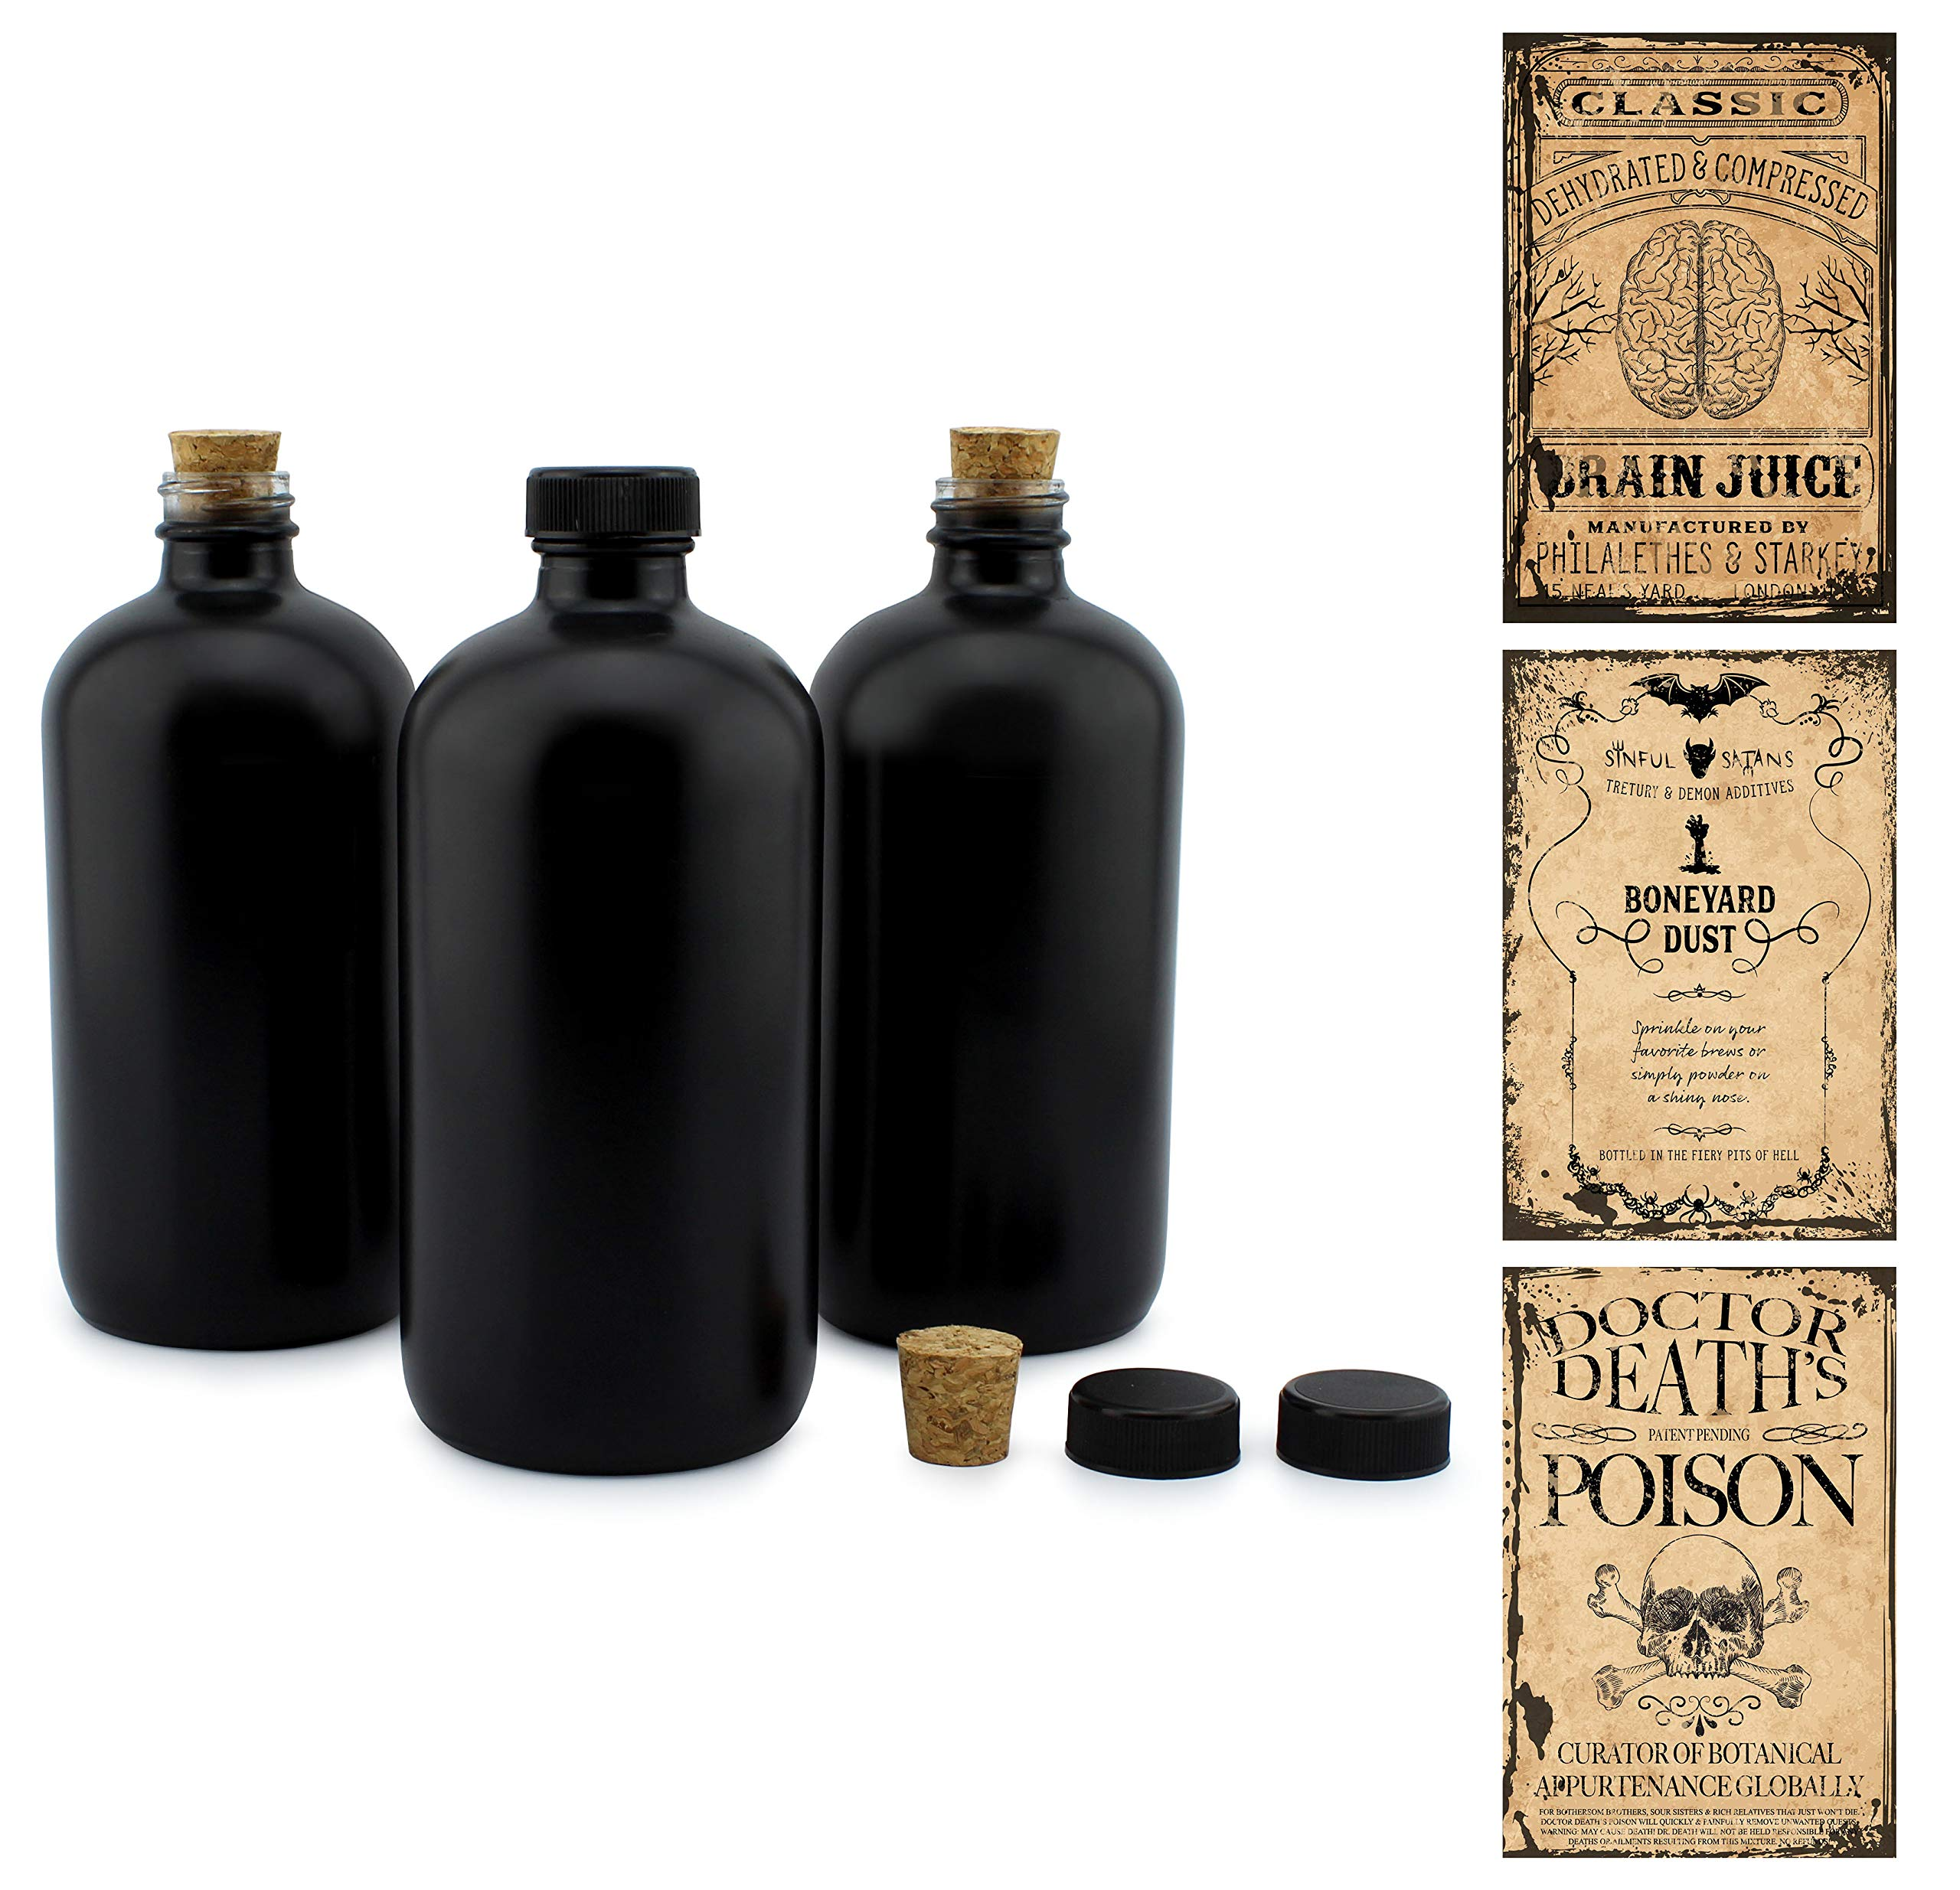 Cornucopia Brands Black 16-Ounce Glass Apothecary Bottles (3-Pack); Boston Round Bottles with Designer Labels Ideal for Aromatherapy, DIY, Herbal Treatments and Halloween, Matte Black Coated Bottles by Cornucopia Brands